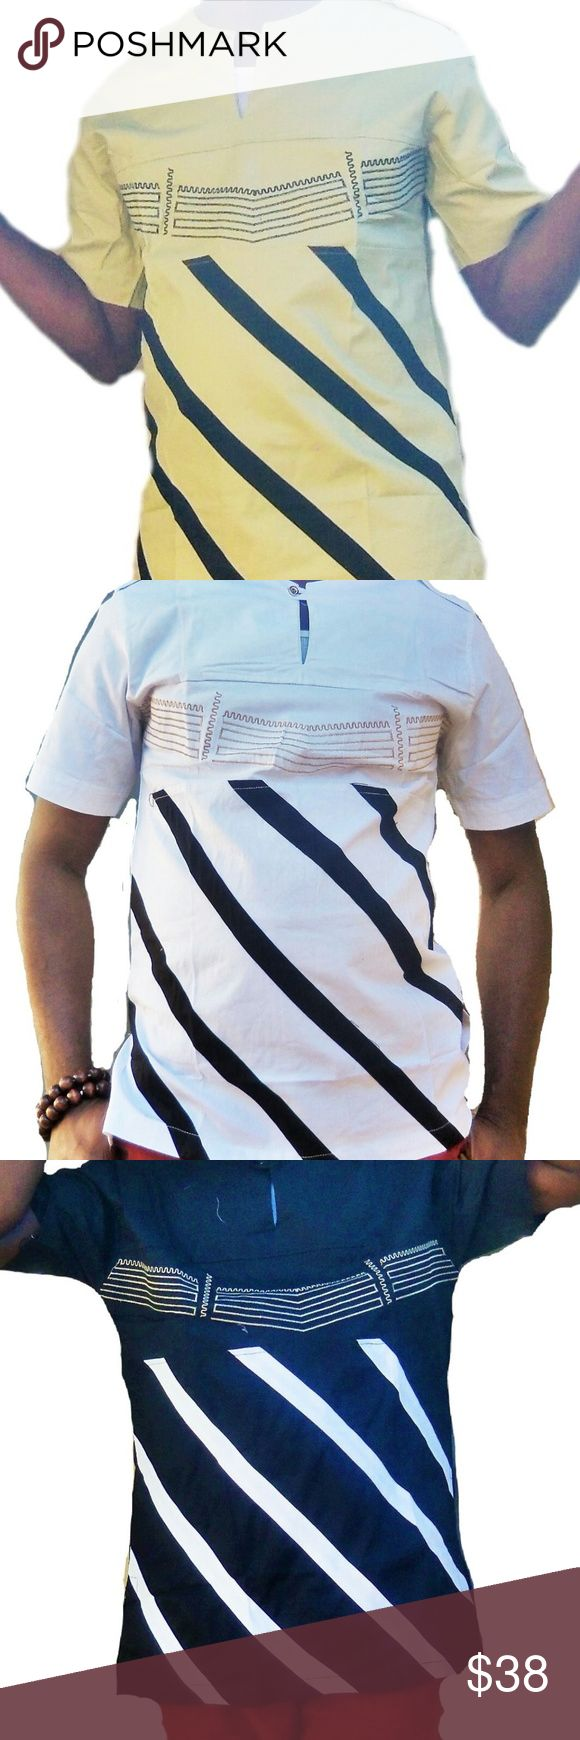 Dashiki African Clothing This is a classic Men's short Sleeve African Traditional clothing finely and neatly sewn and it's made with high quality fabric. It has a perfect finish and it is ideal for any special occasion be it wedding ceremony, church service, party, outdooring etc.This costume can also be a perfect gift option to a love one. African Clothing Men Shirts Casual Button Down Shirts